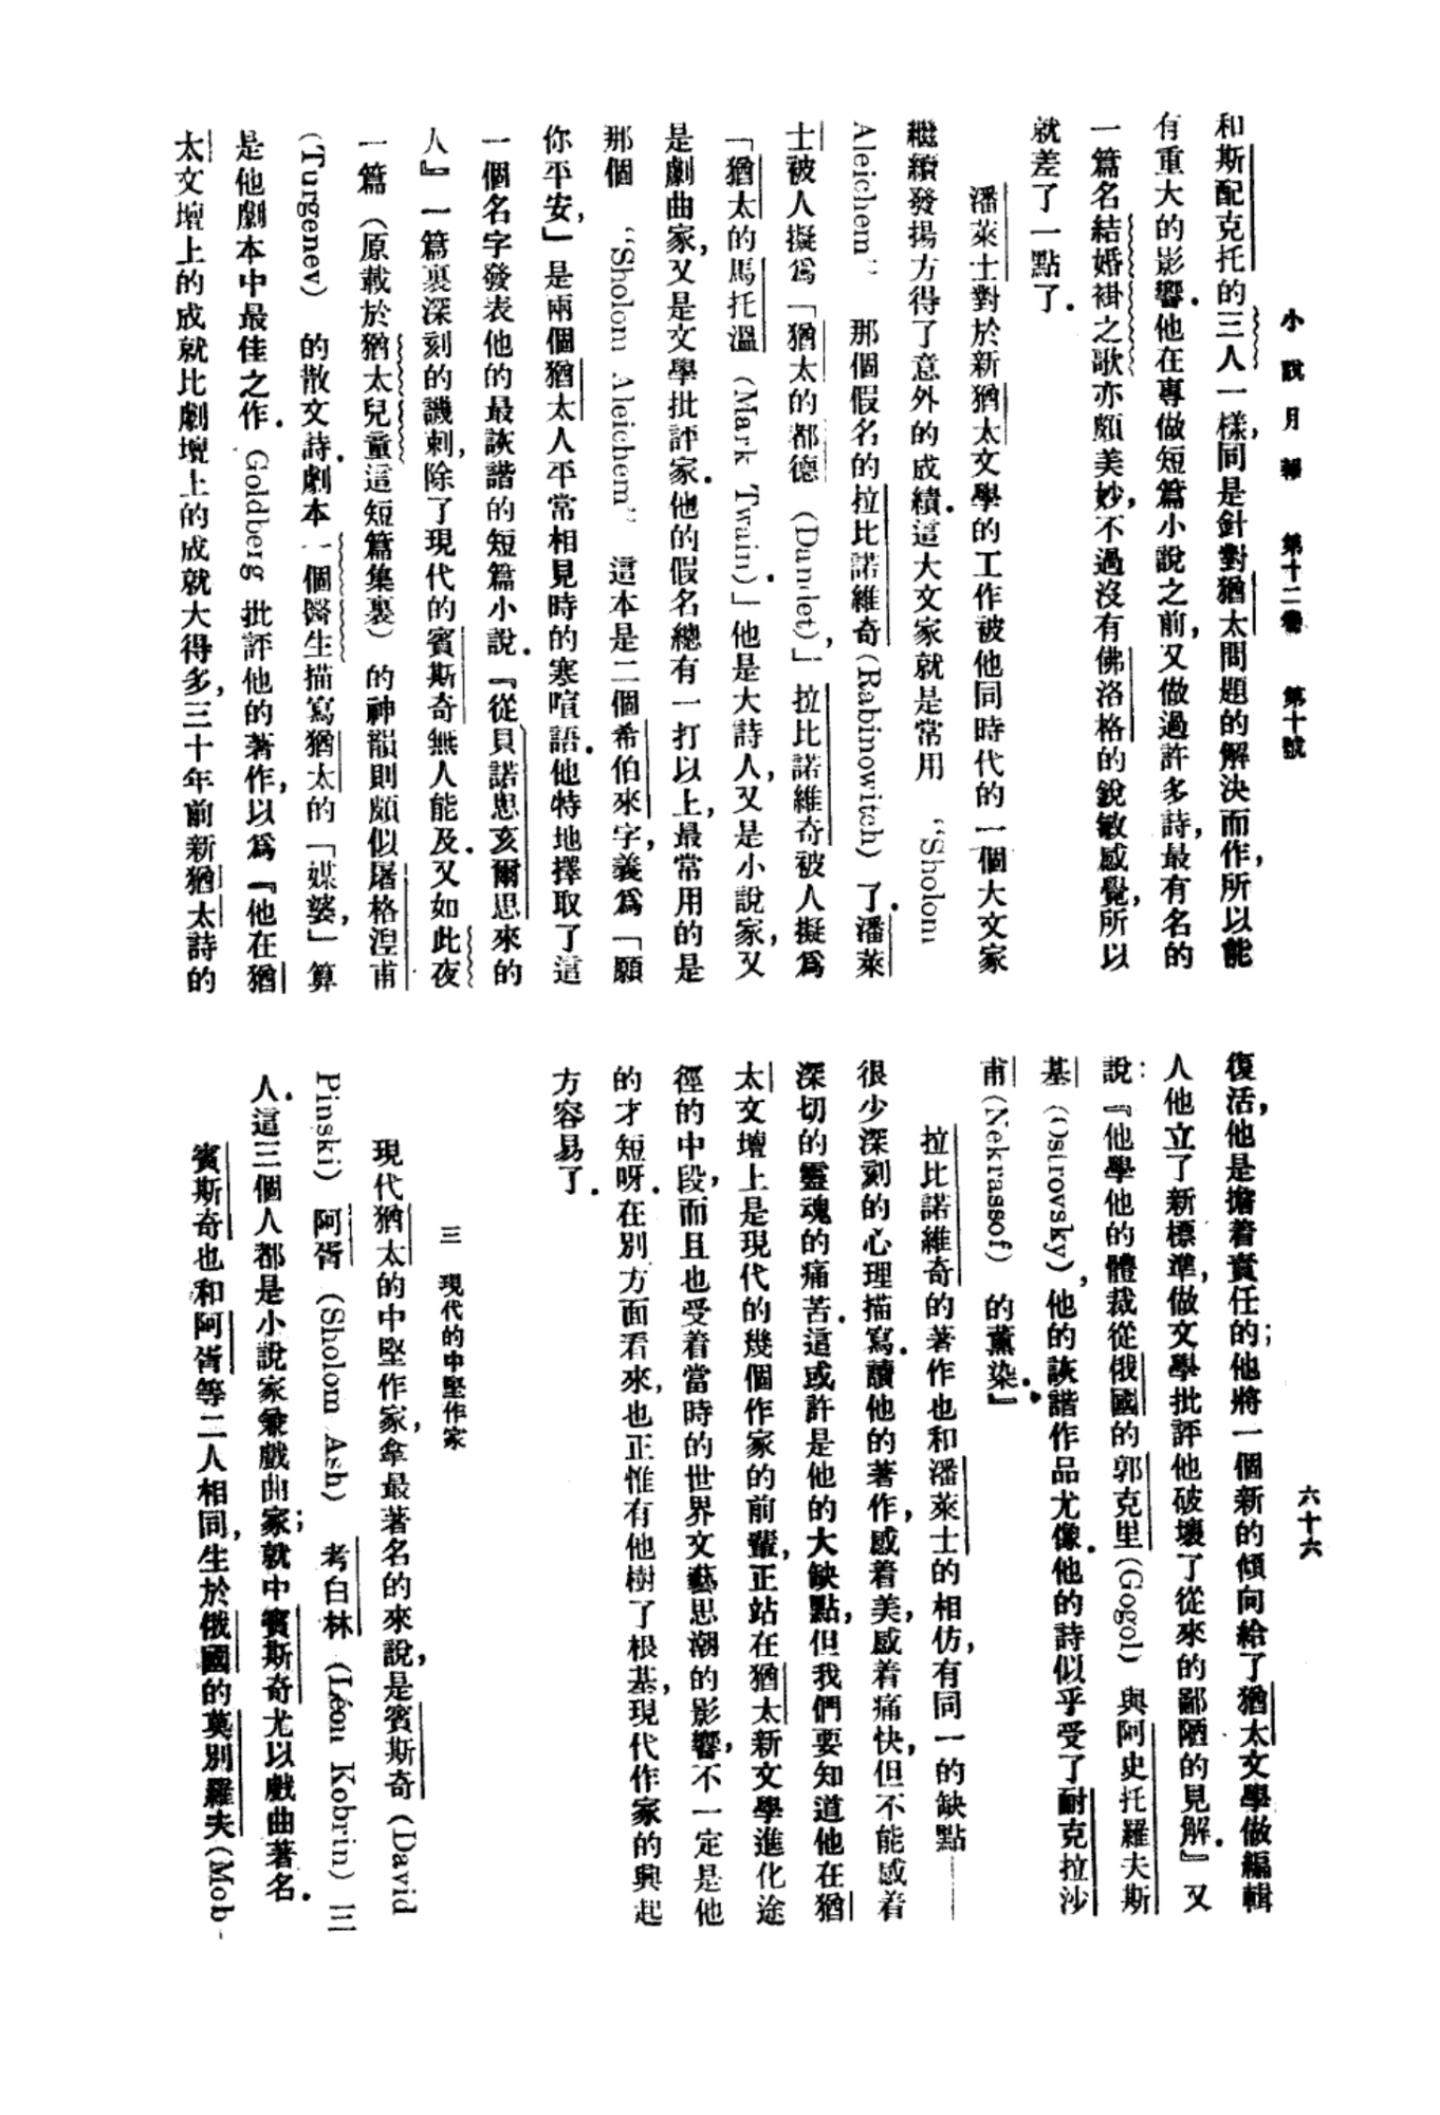 <p>A page of Mao Dun's arti­cle where the names of some <em>Klasik­ers</em> are clar­i­fied in Eng­lish&nbsp;spelling.</p>